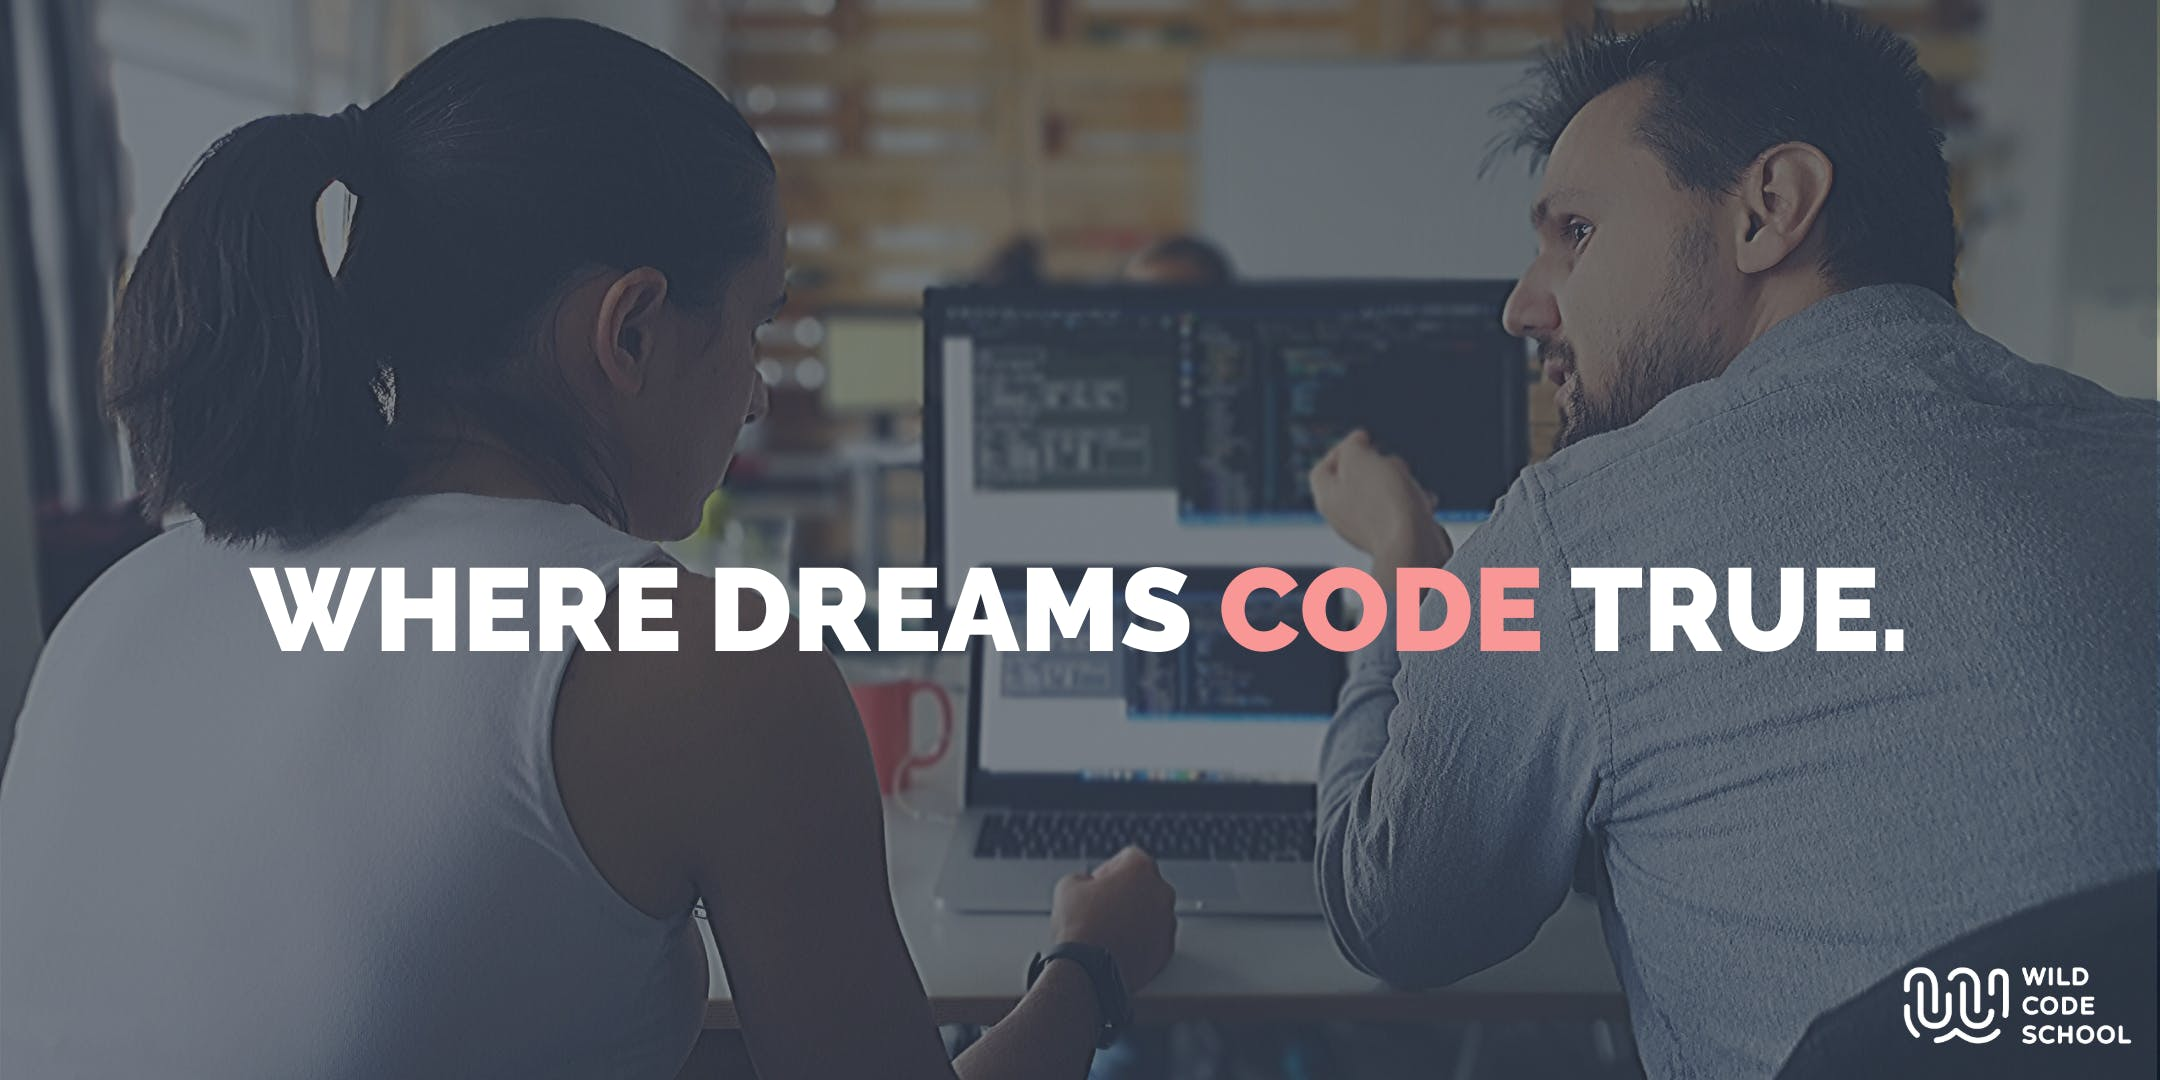 Is coding for me? Find out & get to know Wild Code School